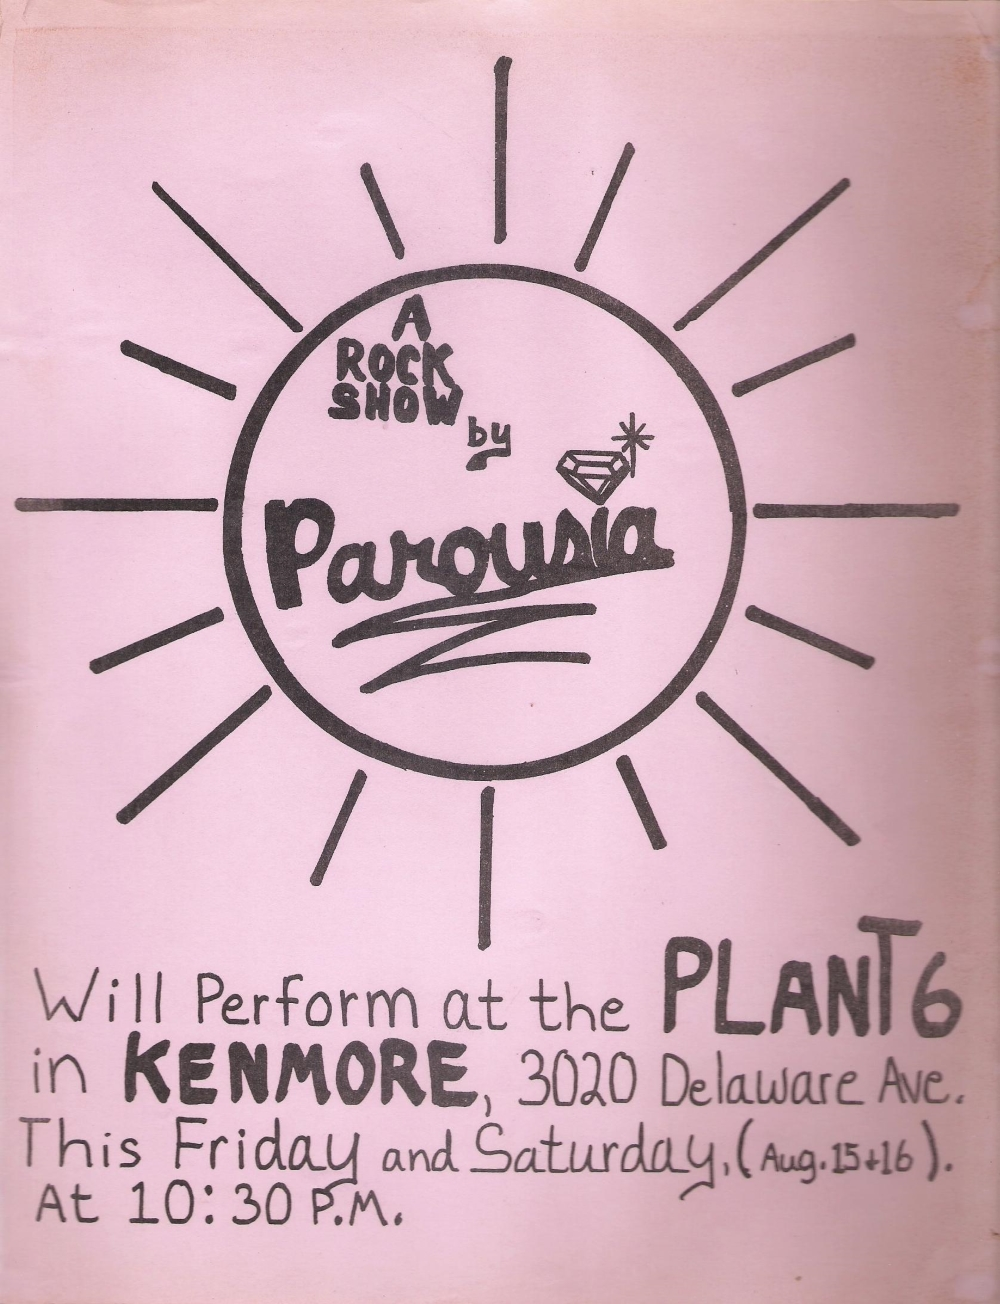 Band flyer - PAROUSIA at the Plant 6 – August 16 and 16, 1980